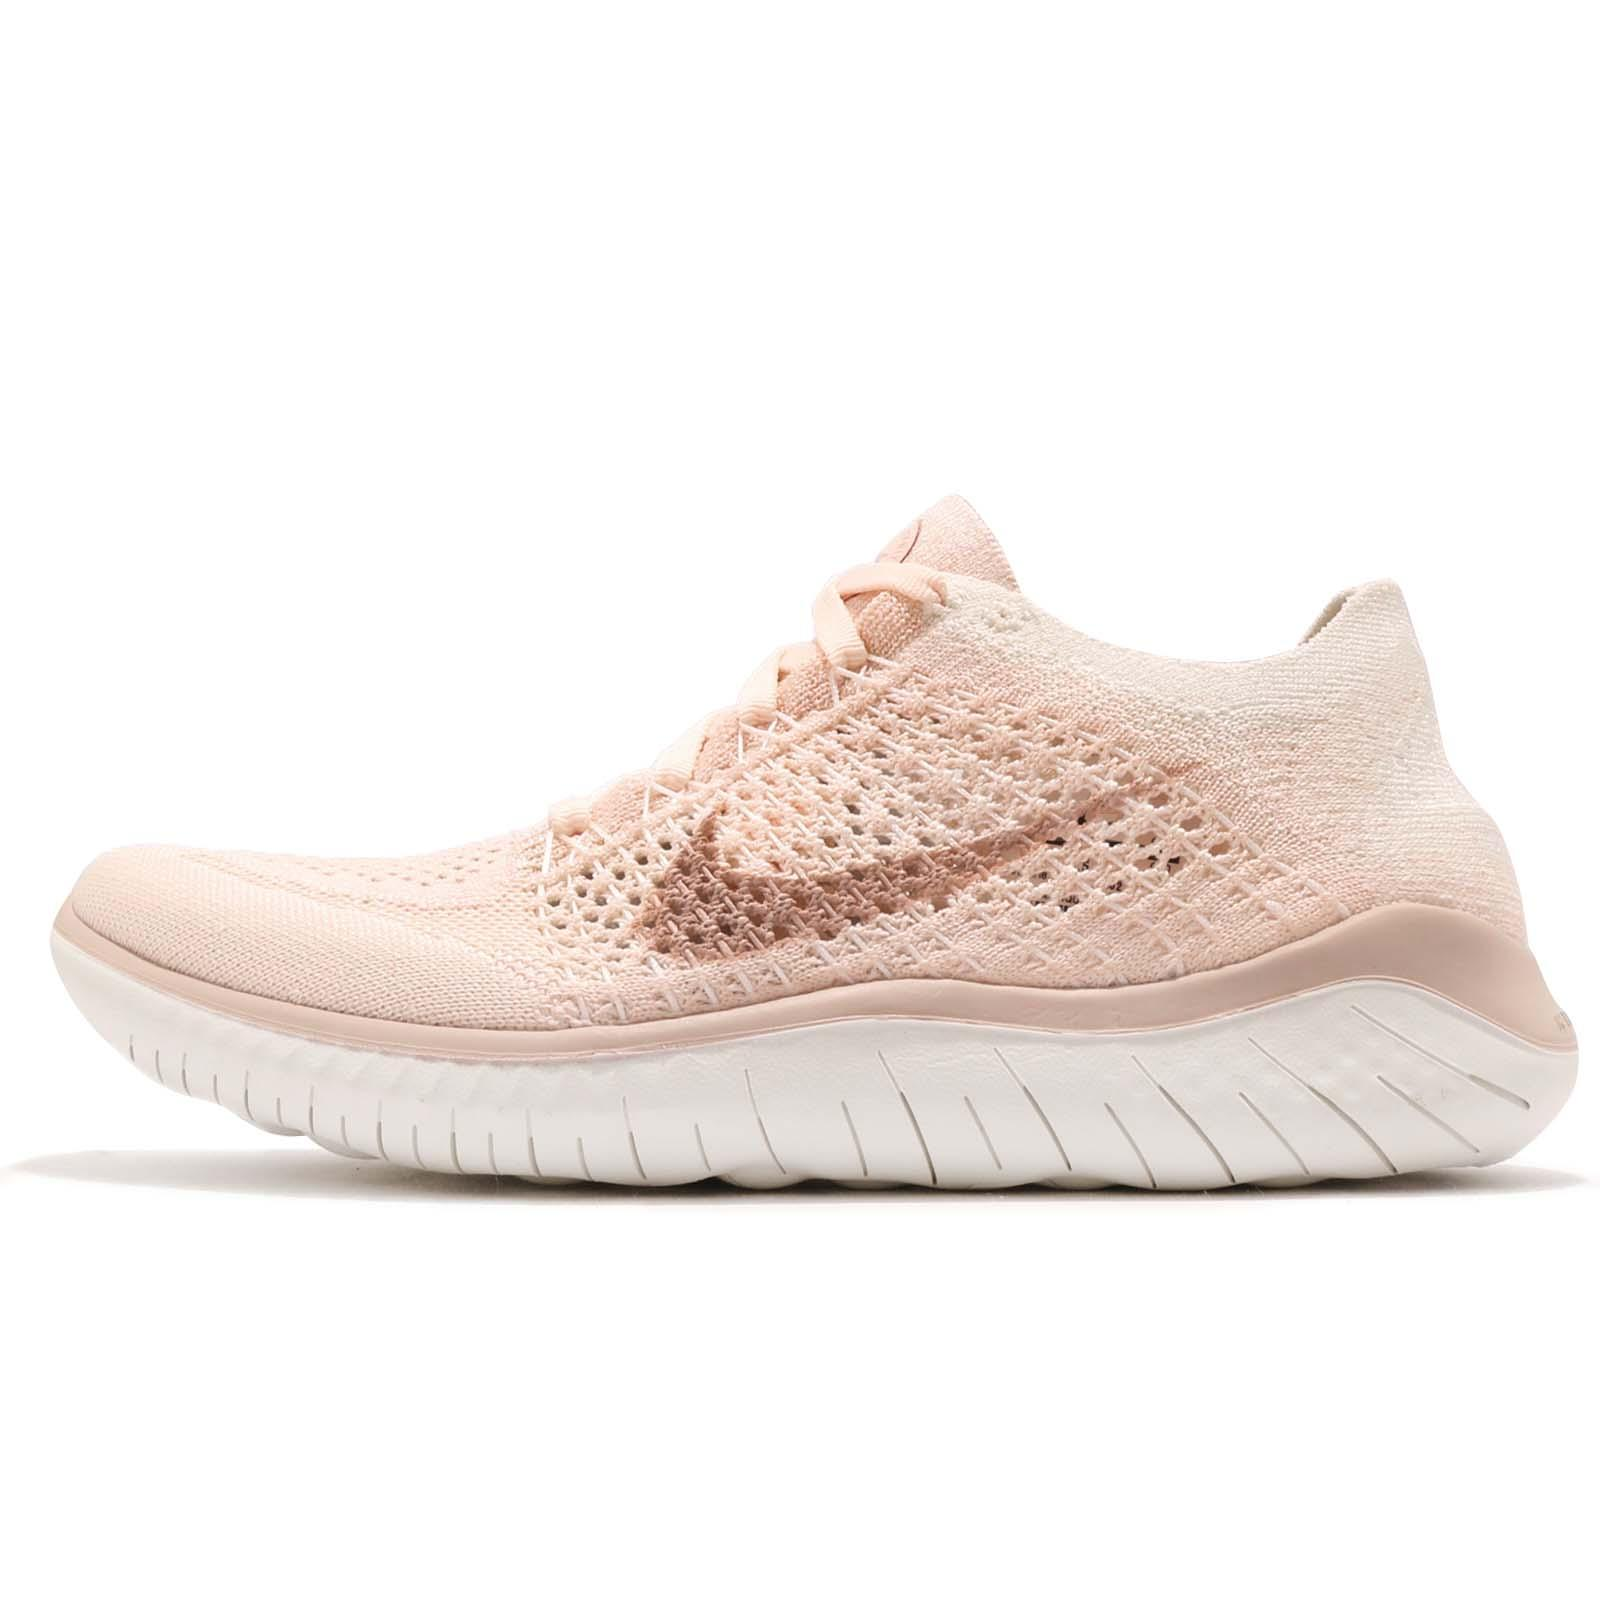 superior quality b891c 29372 Nike Wmns Free RN Flyknit 2018 Guava Ice Beige Women Running Shoes  942839-802